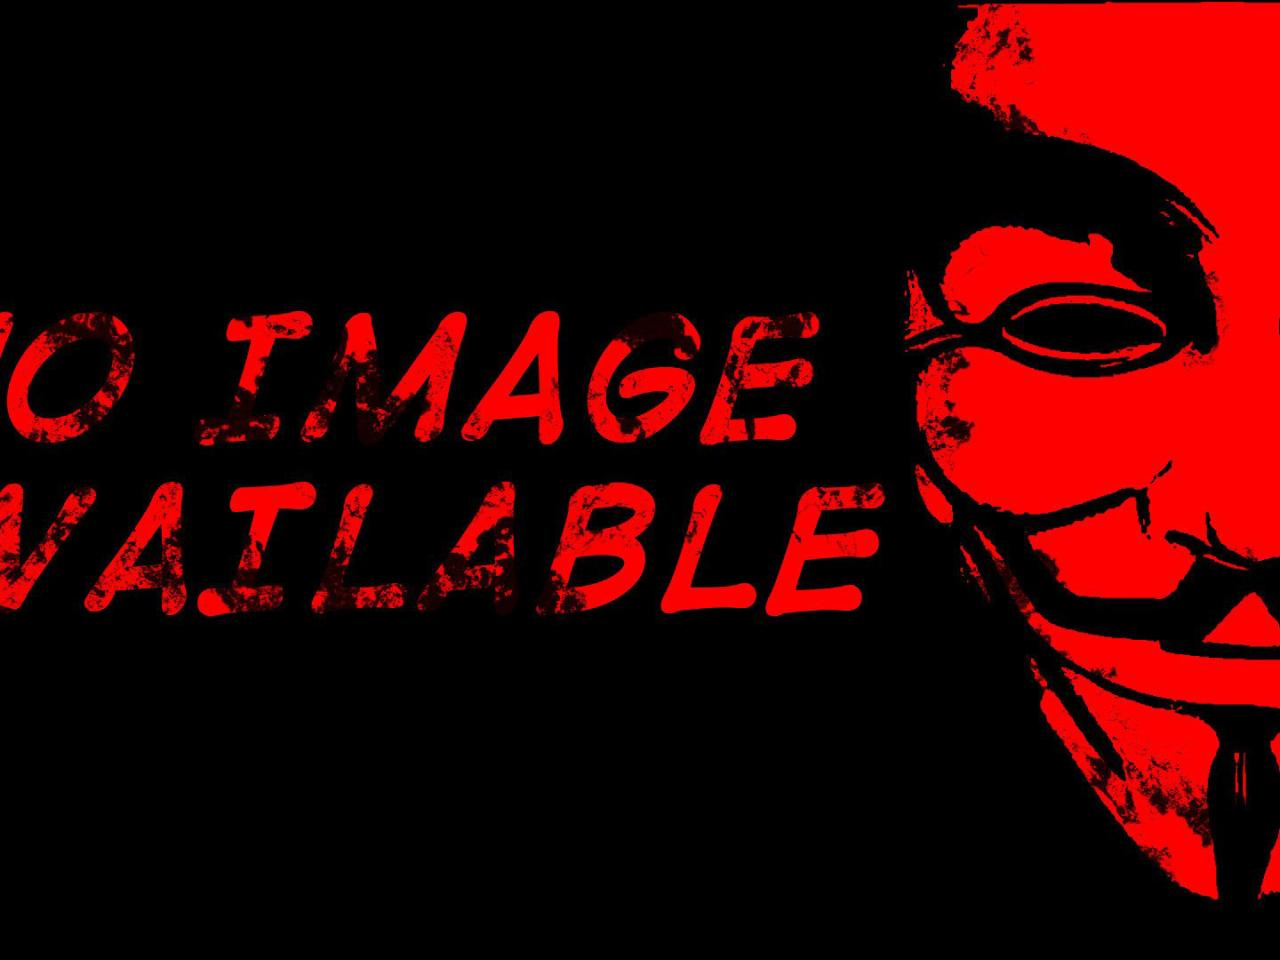 Anonymous Hd Wallpaper 1366x768 Red Anonymous Mask Picture For Wallpaper Hd Wallpapers